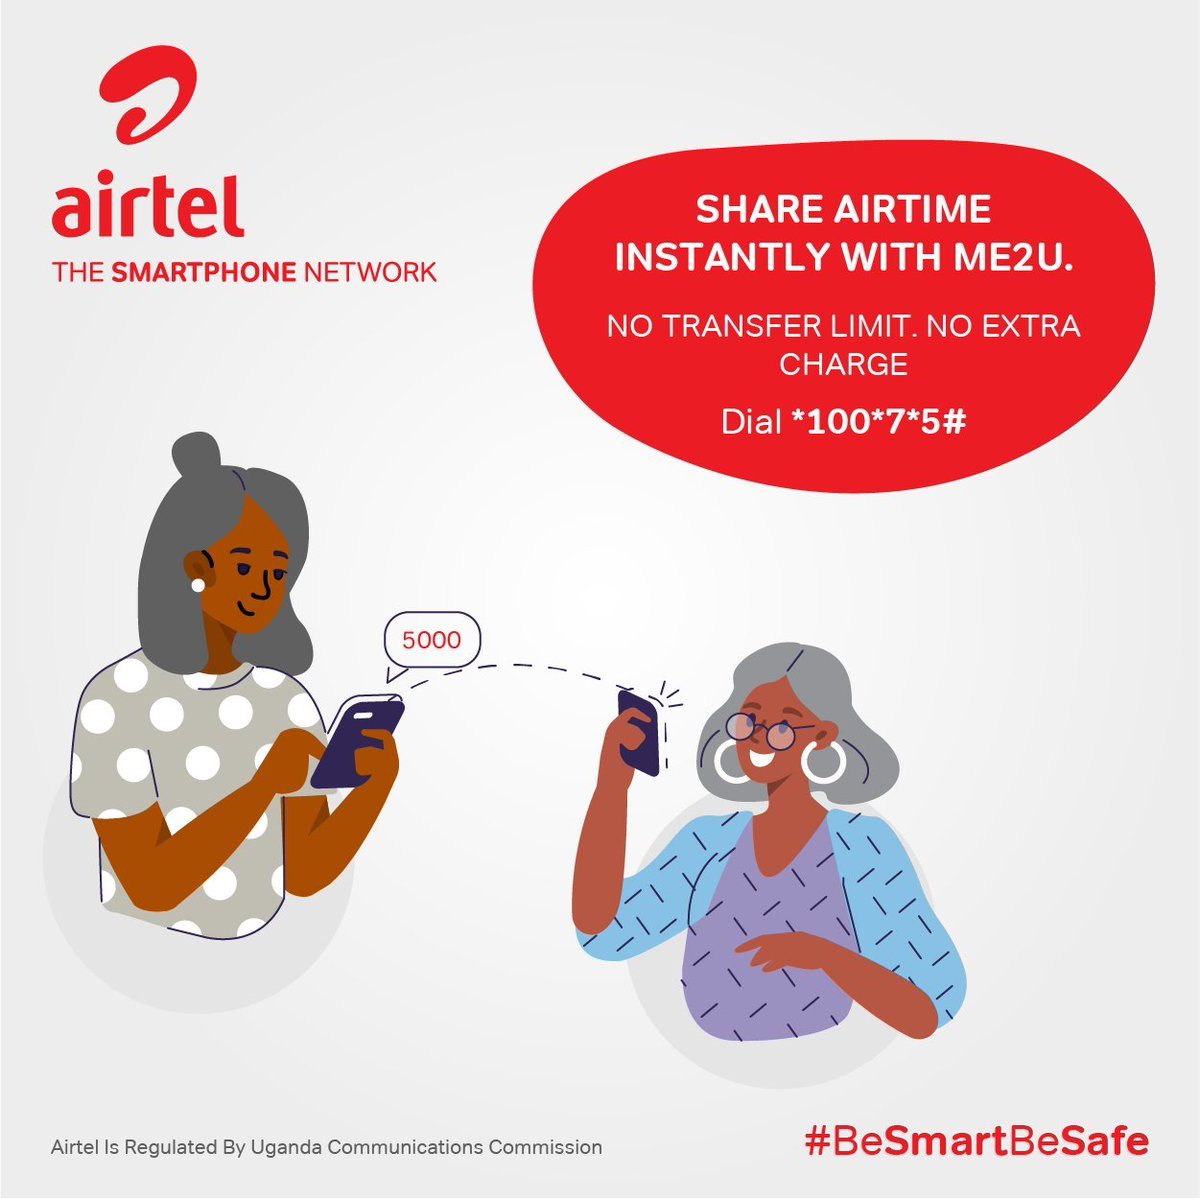 Sharing is caring and caring is happiness. Share your airtime instantly at no extra cost with no transfer limit with Airtel Me 2 U. Simply Dial 100*7*5# to get started. #BeSmartBeSafe